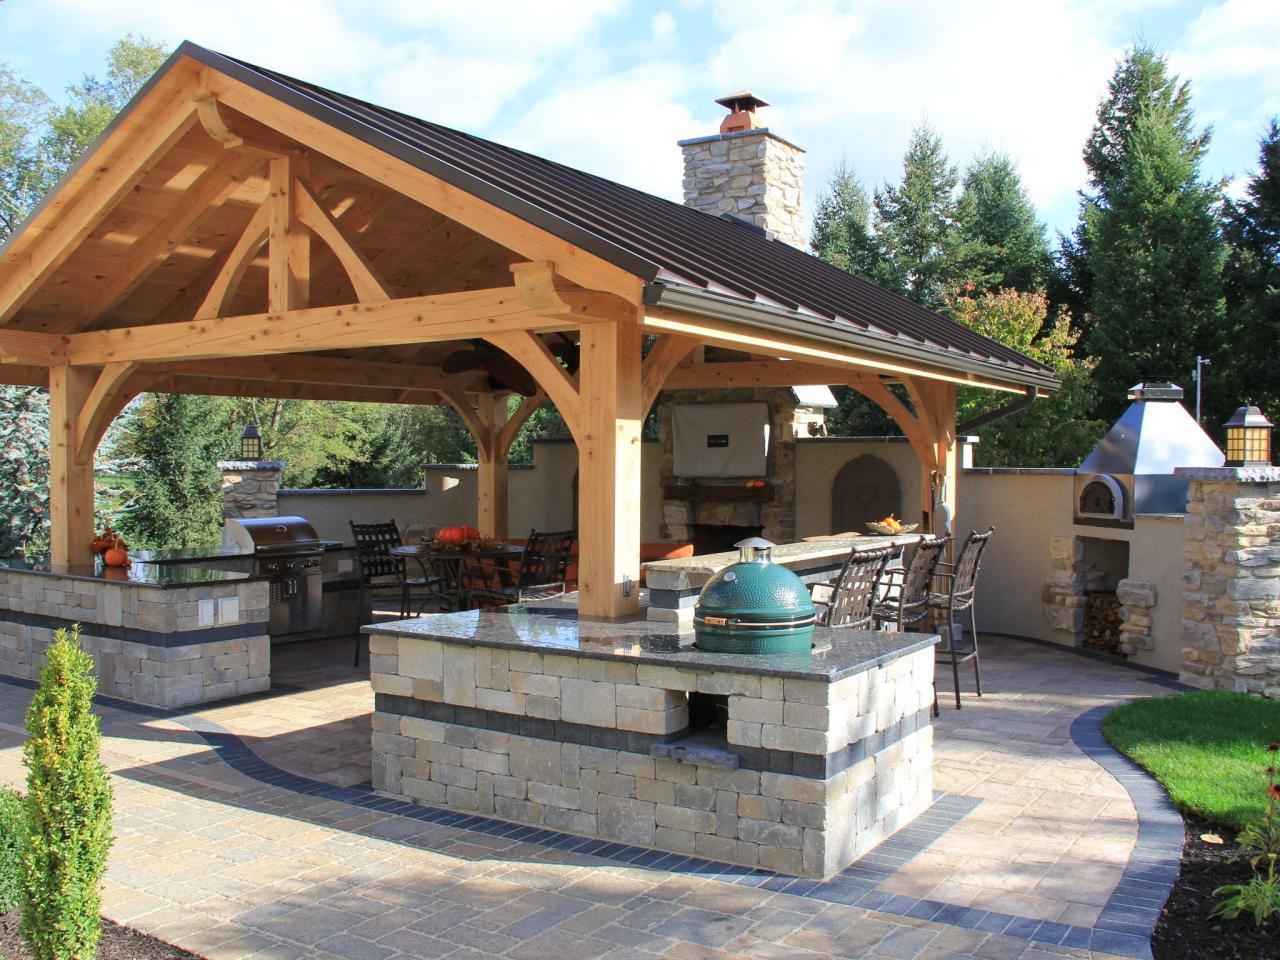 pennsylvania outdoor living room with bar seating and appliances such